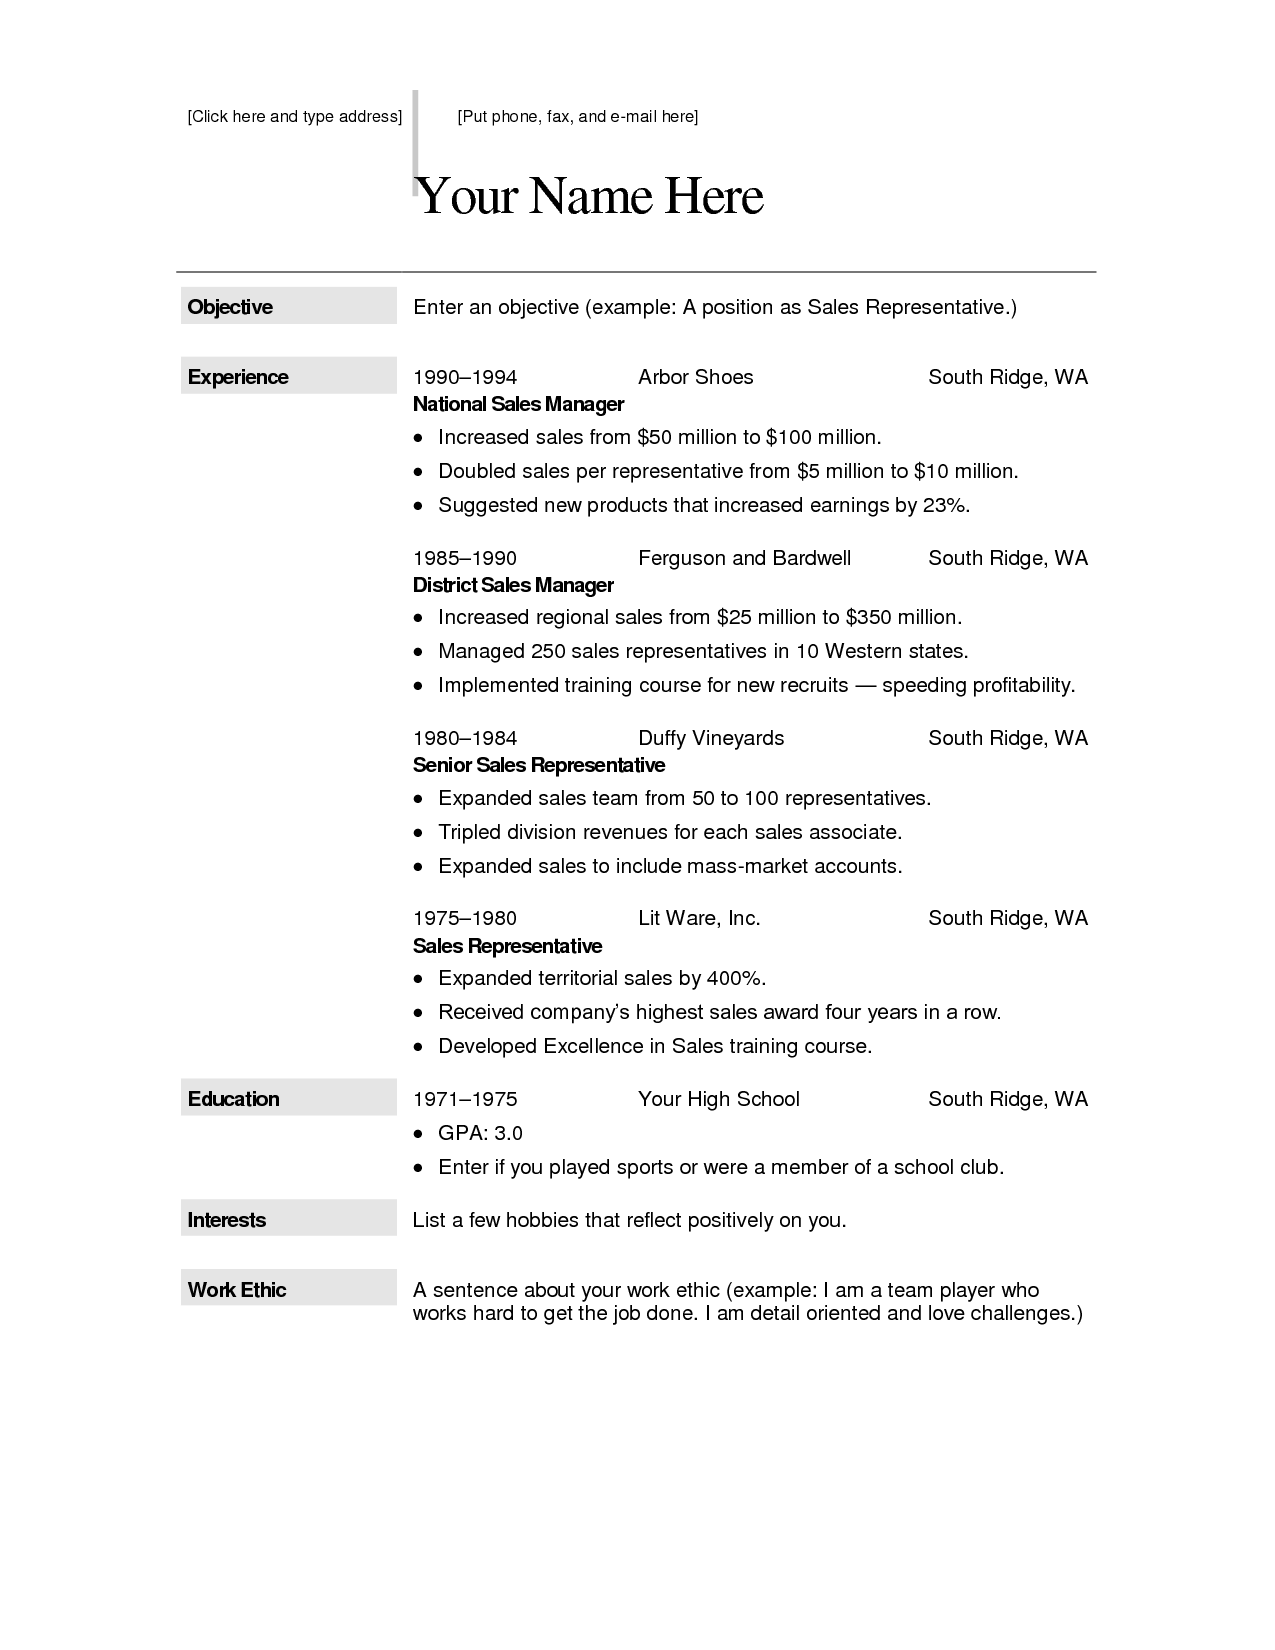 Free Usable Resume Templates Free Resume Templates, Free Blank Resume Free  Printable Resume Format Free Printable For, Resume Examples Free Usable  Resume ... Regarding Resume Sample Download